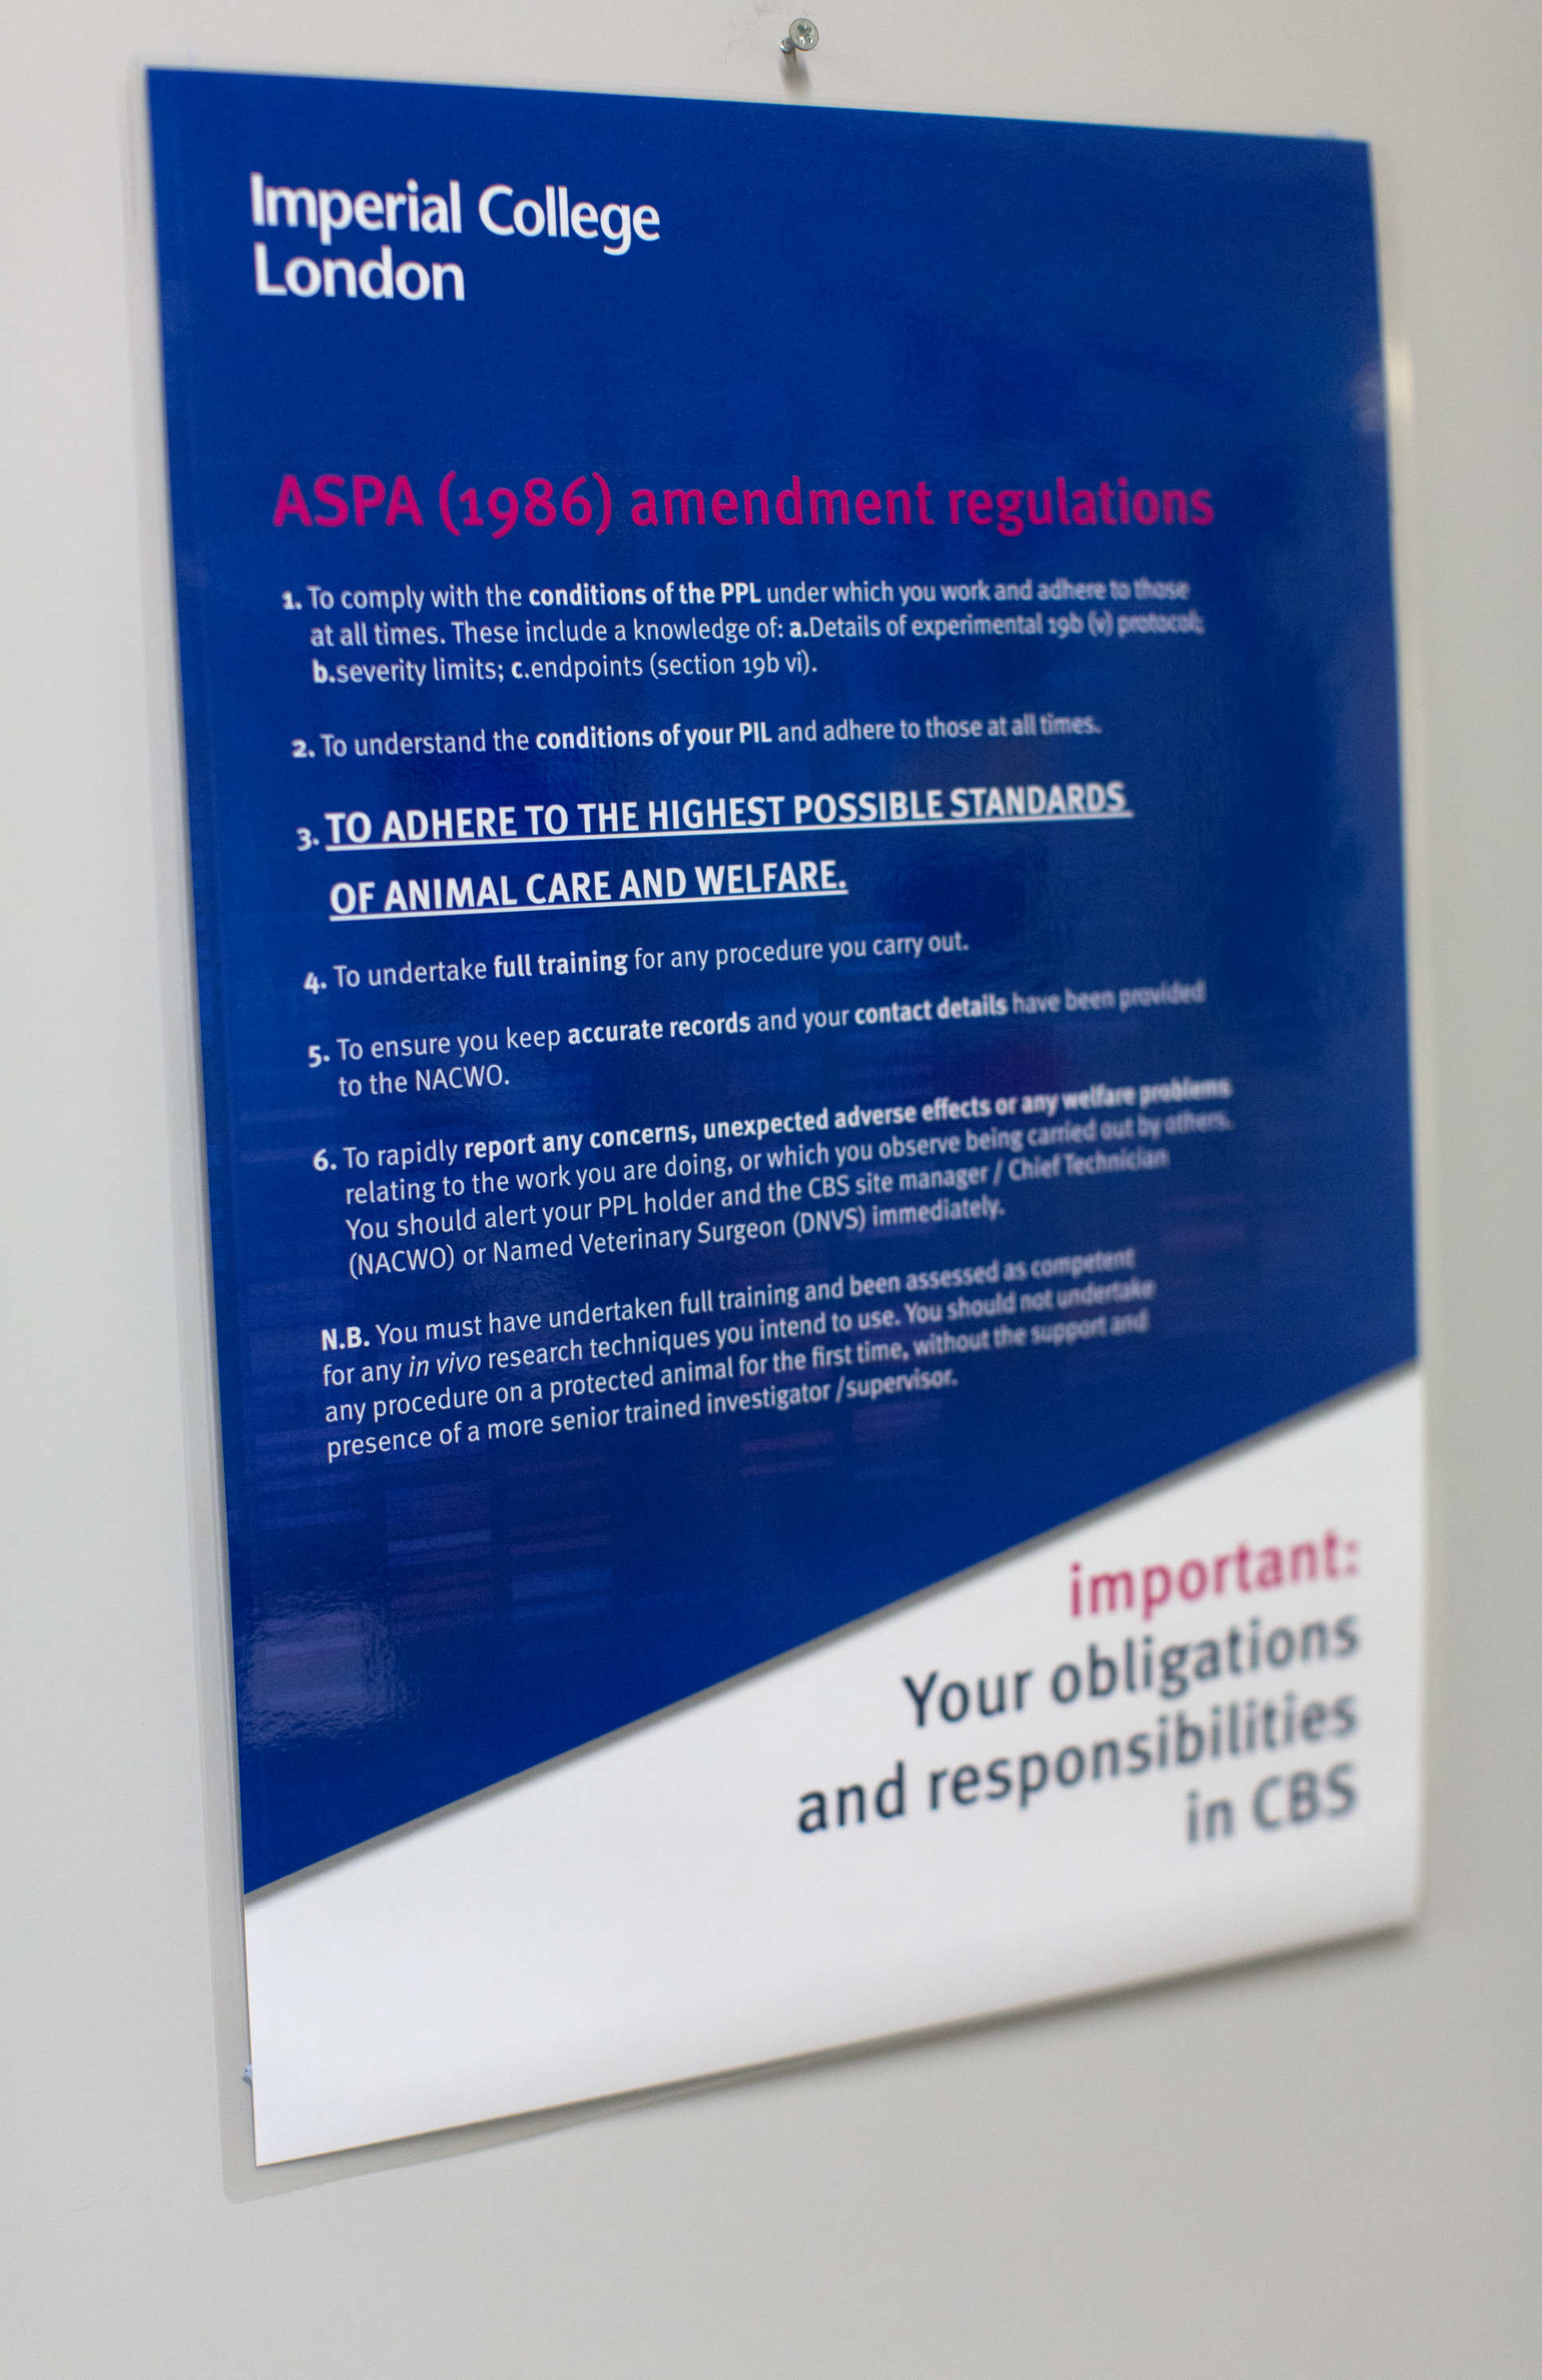 ASPA Amendment regulations